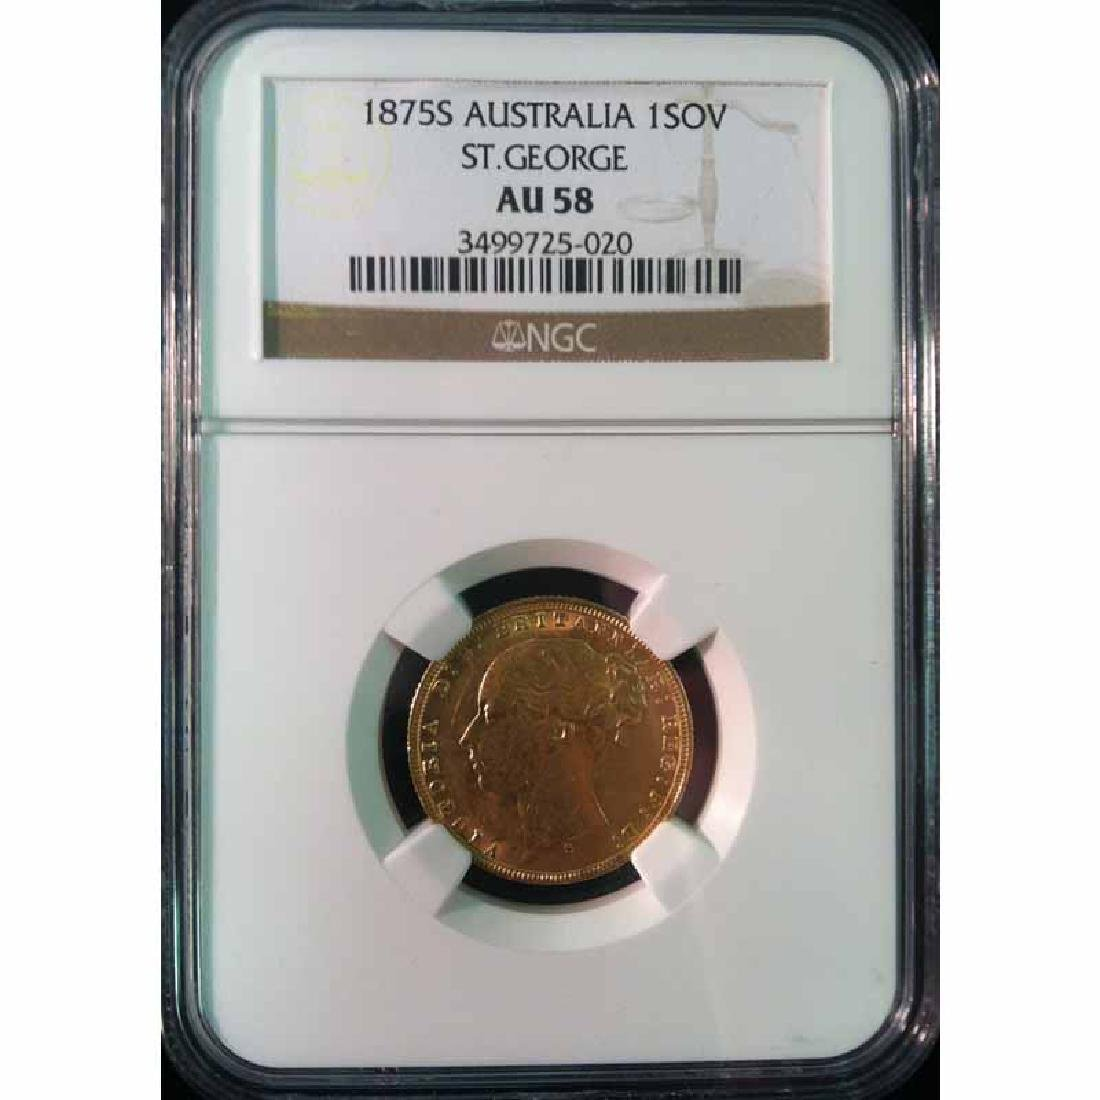 Australia gold sovereign 1875S St. George AU58